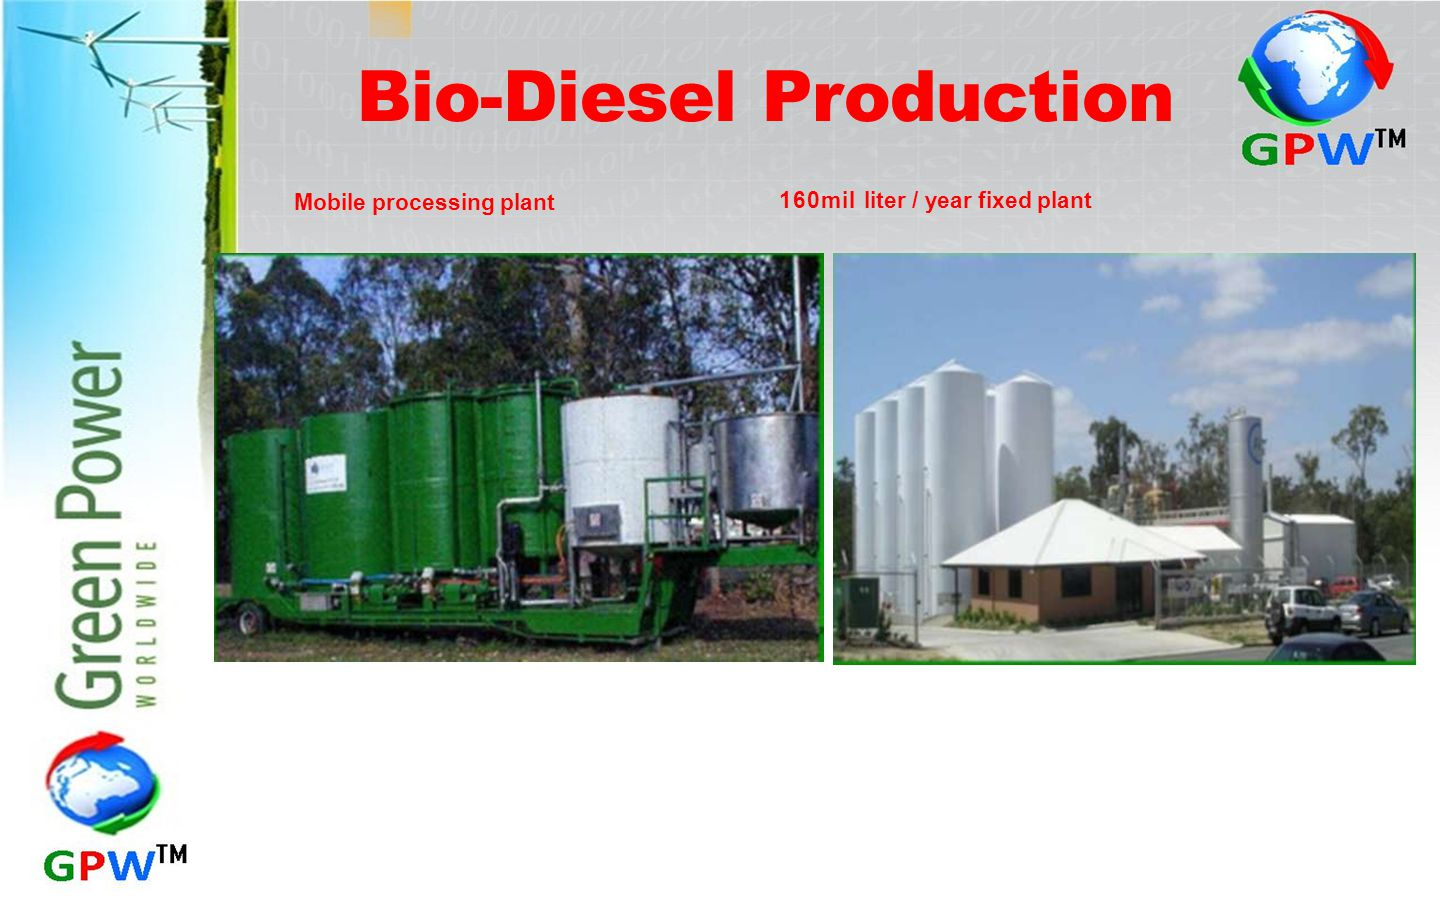 Bio-Diesel Production